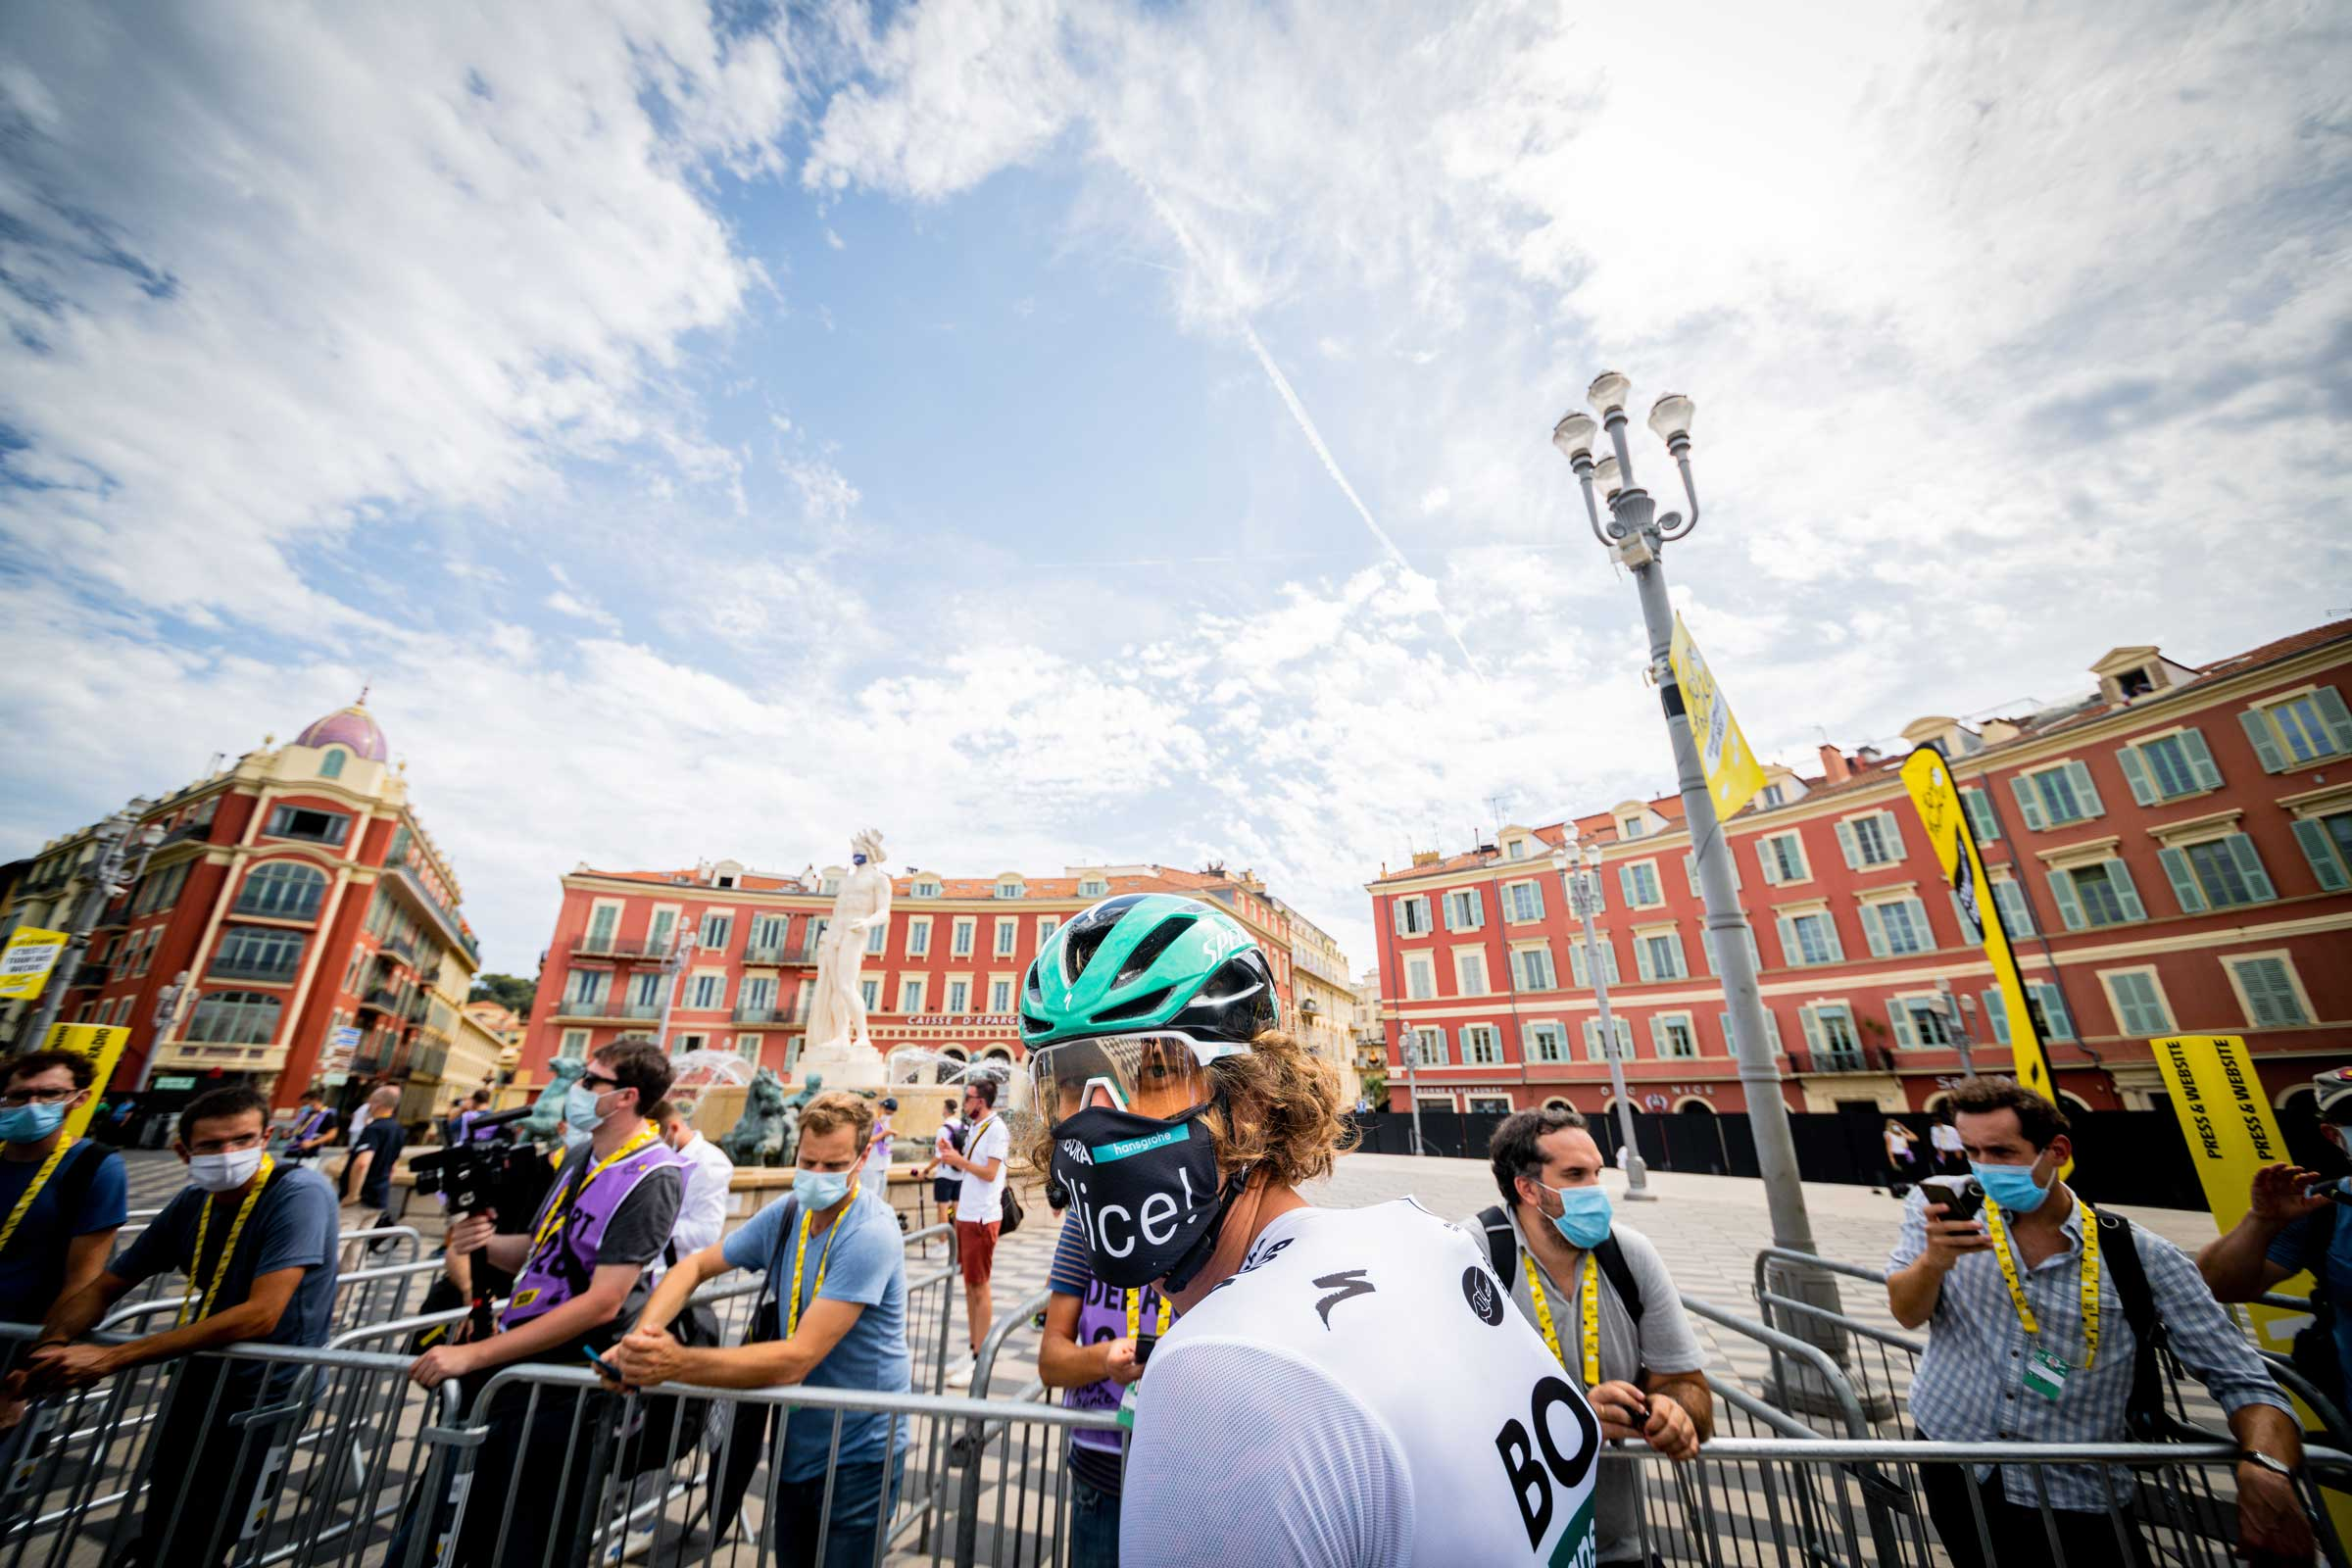 stg01_oss-mixed-zone02_tdf_2020-(1-of-1)